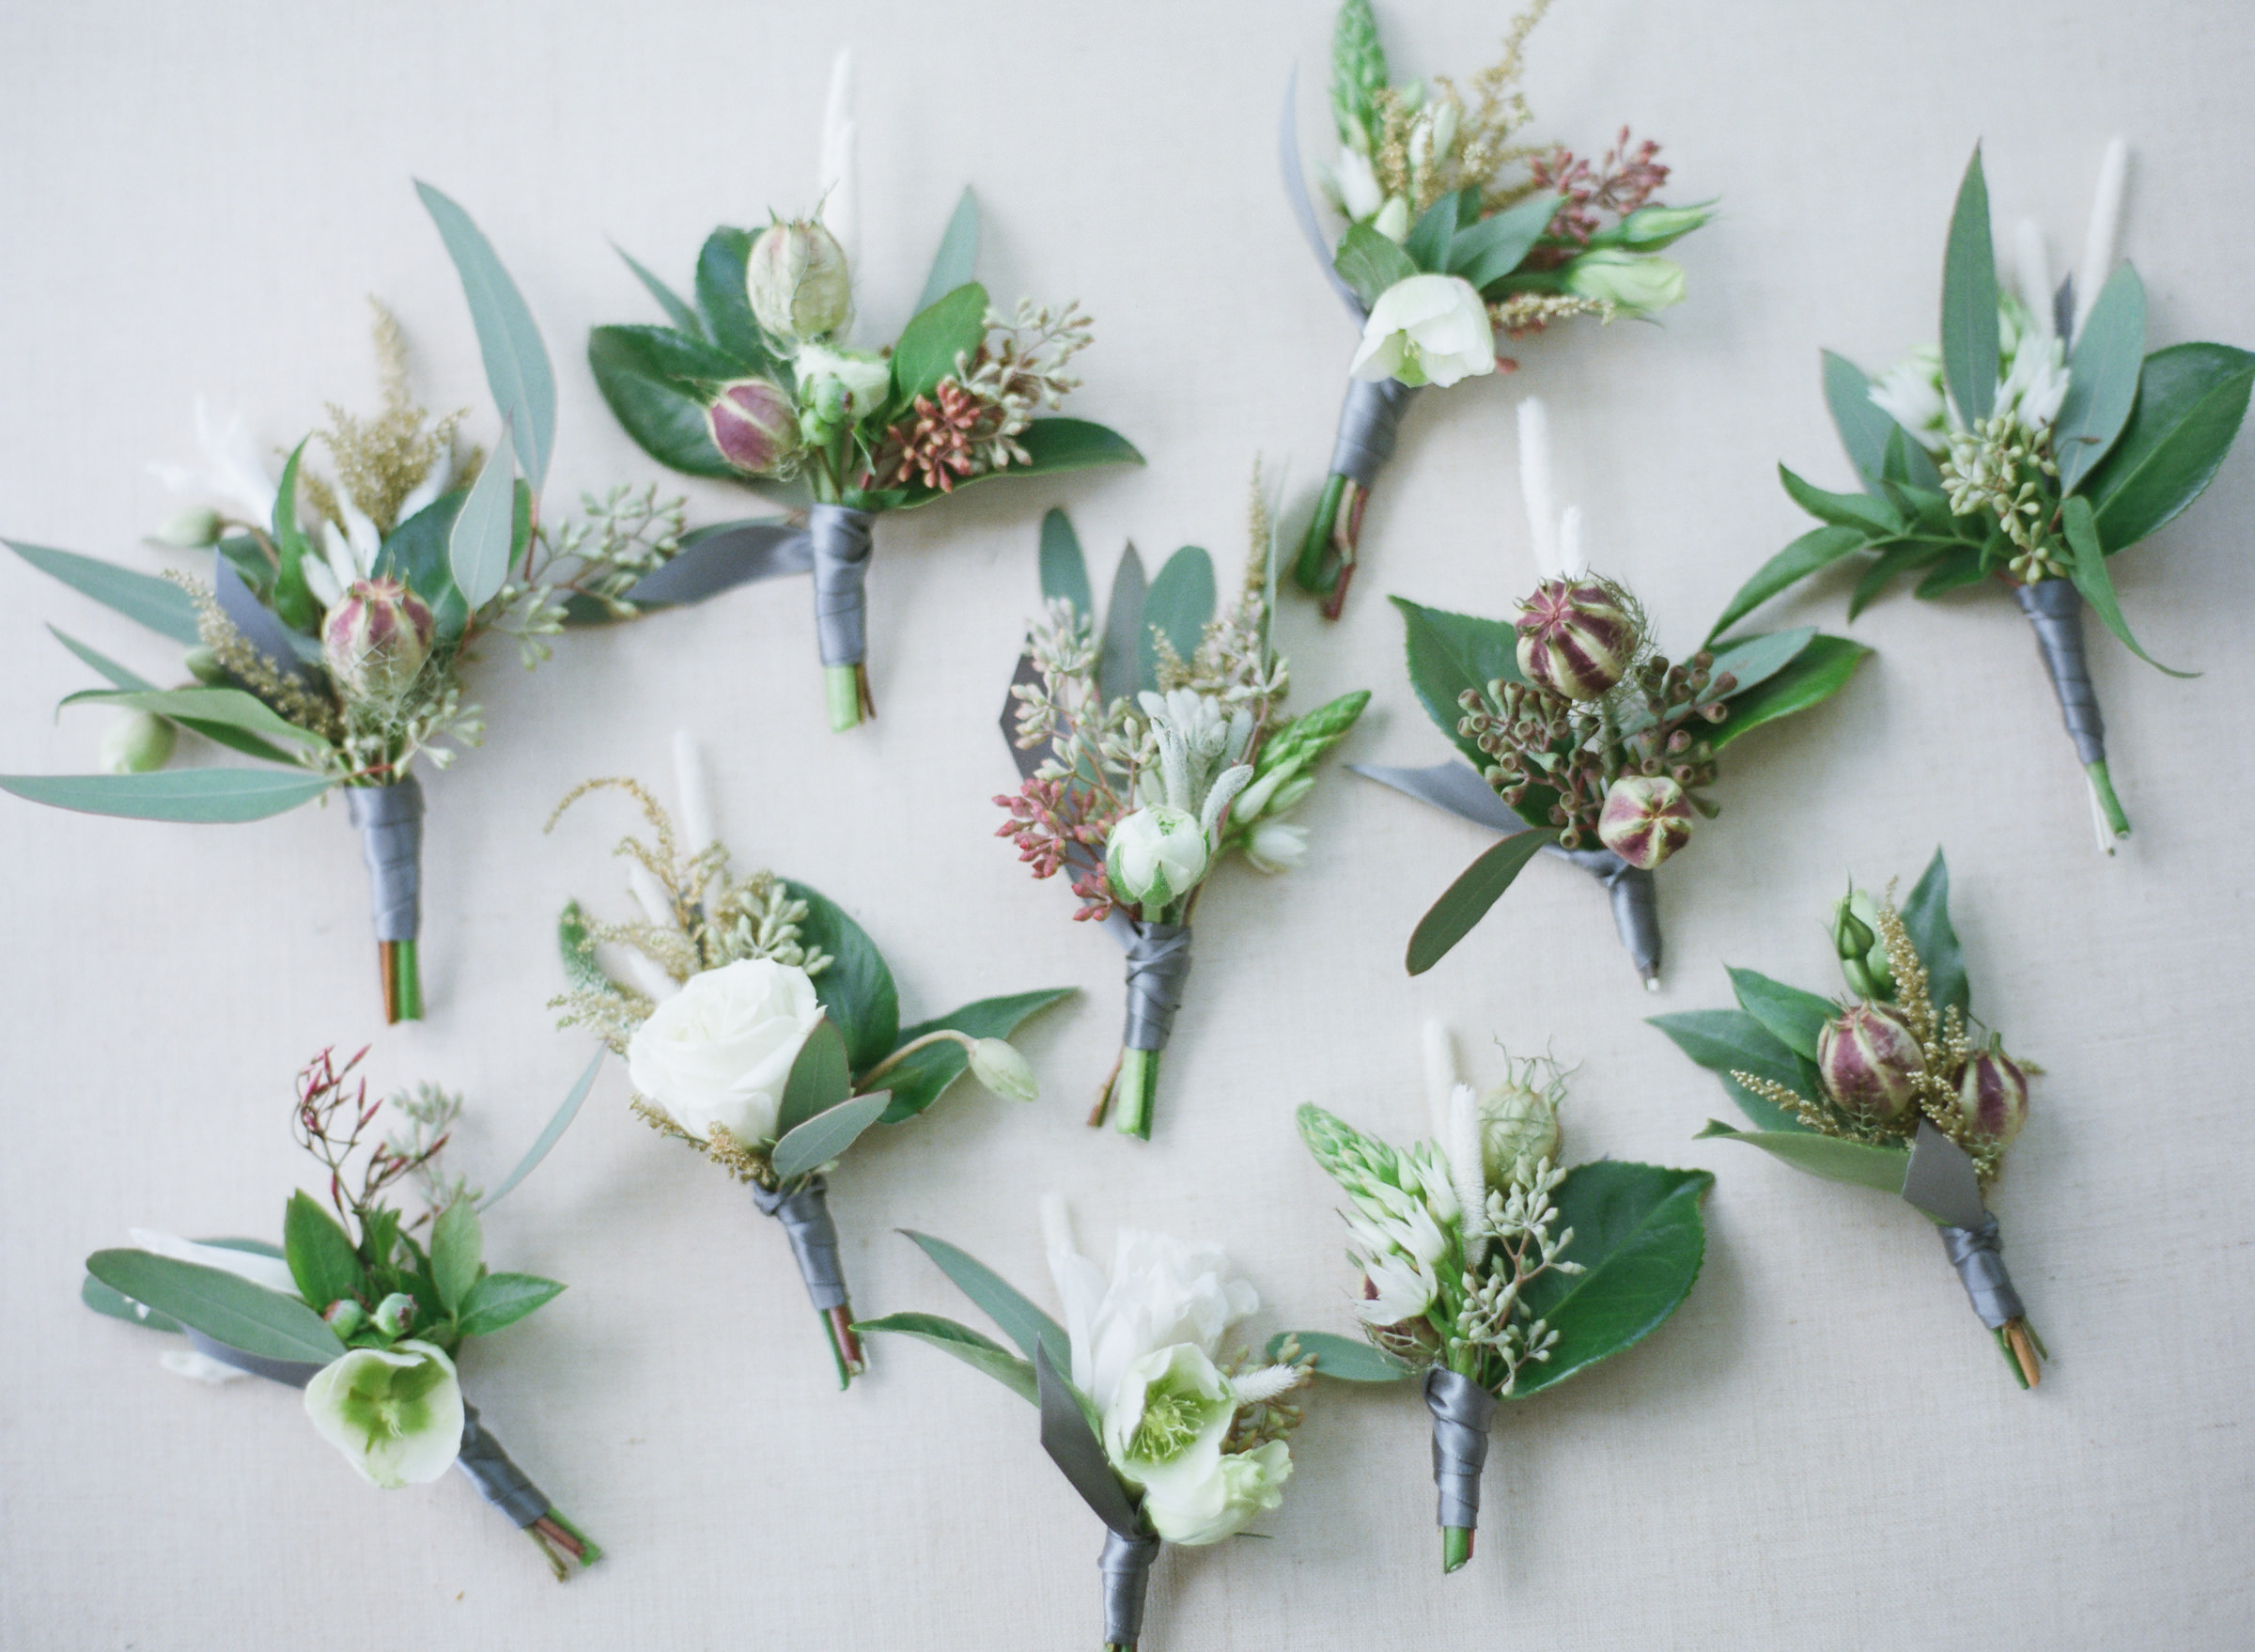 White rose boutonnieres for summer wedding - photo by Amy and Stuart - Los Angeles photographers